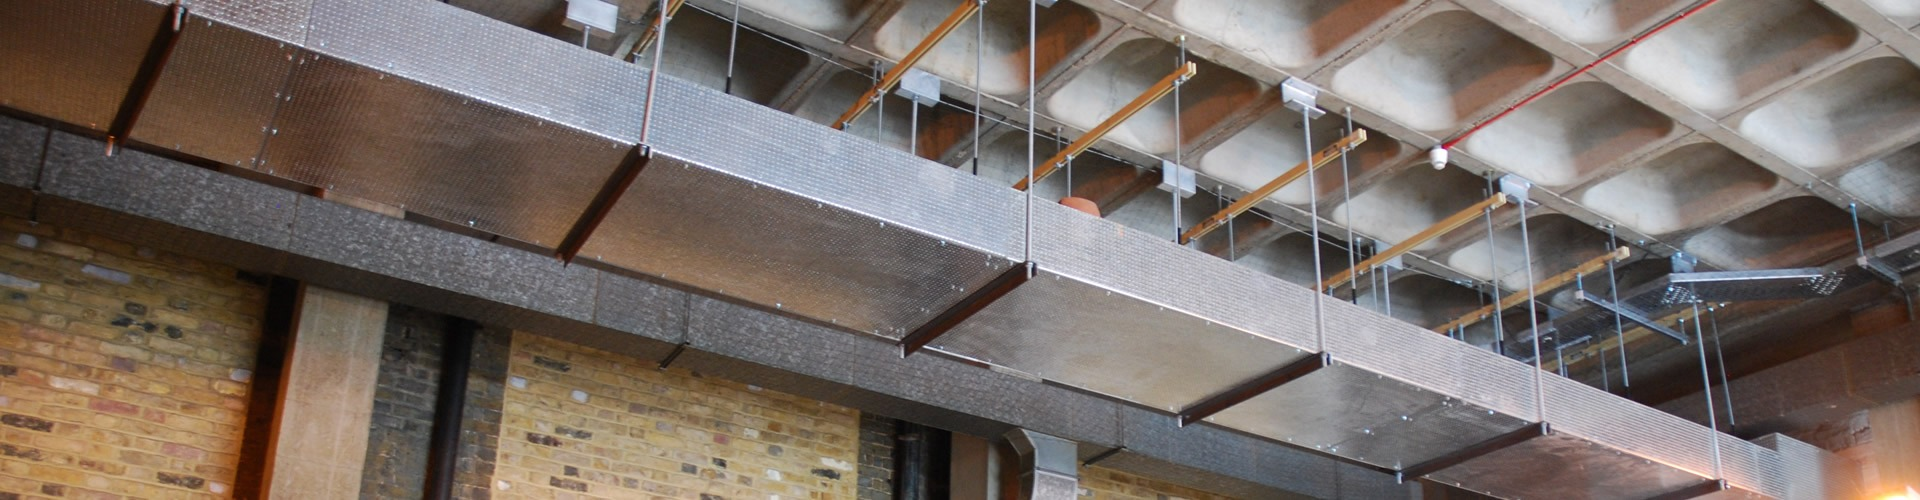 Fire Rated Ductwork (4 sided)